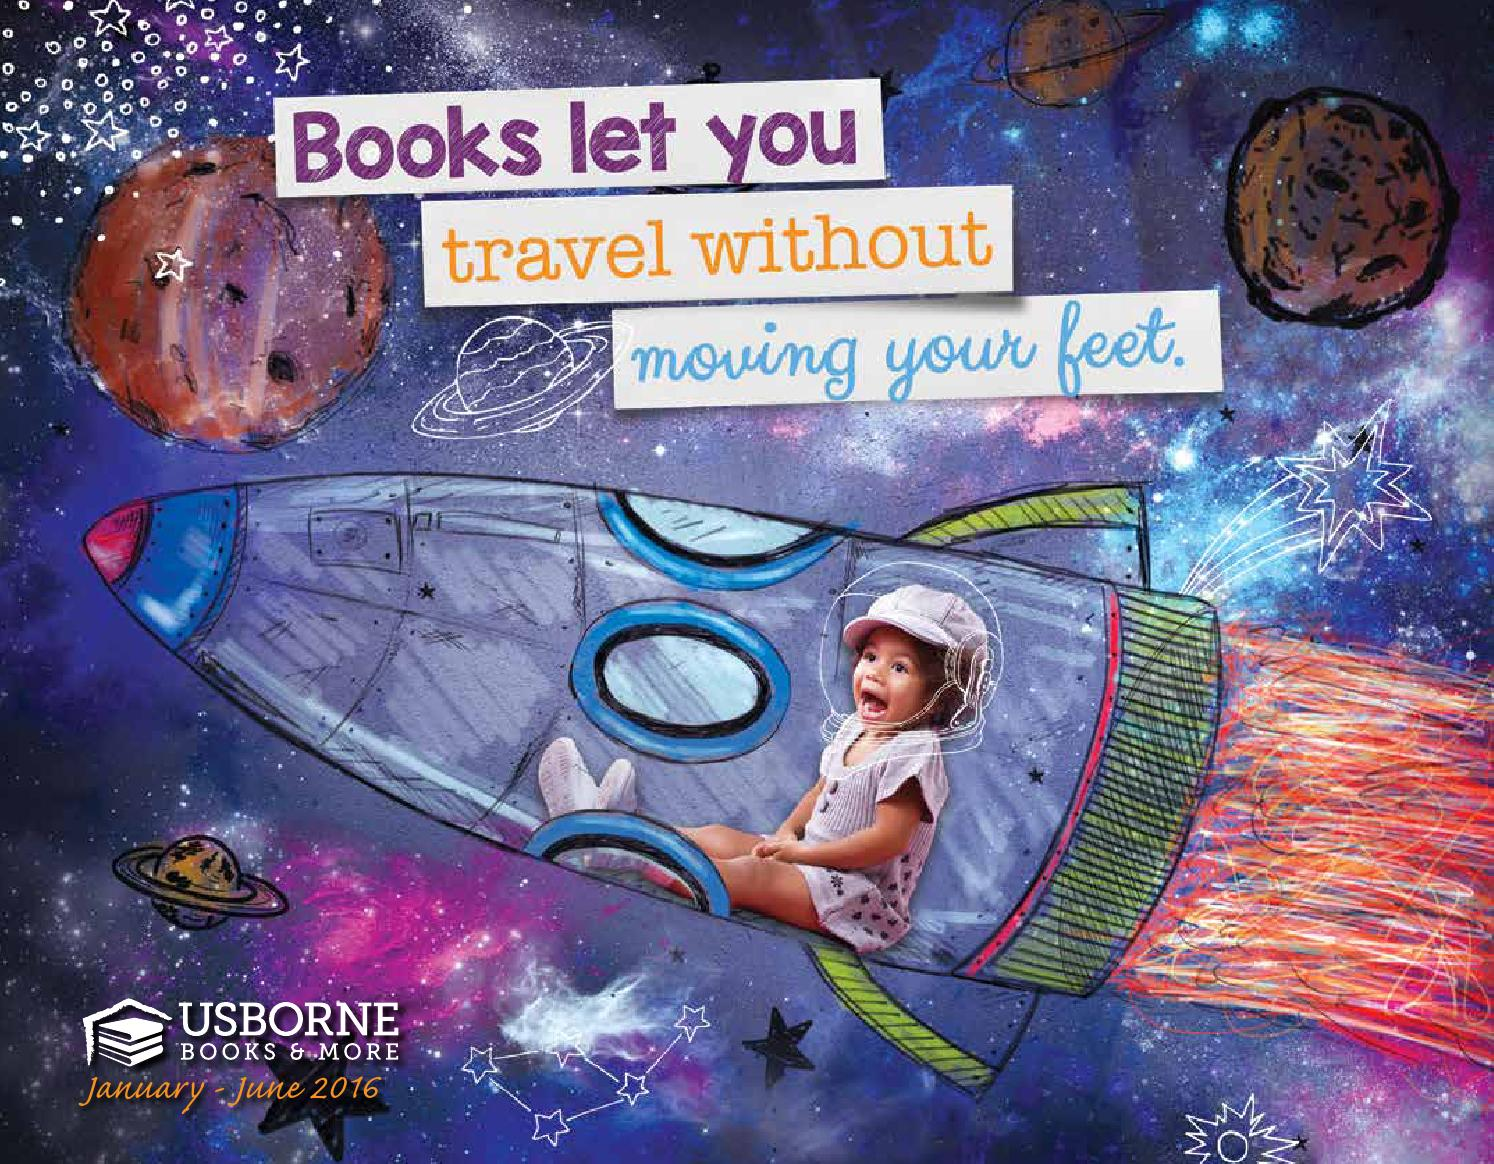 Usborne Books More Full Catalog Spring 2016 By Bookworms Treehouse